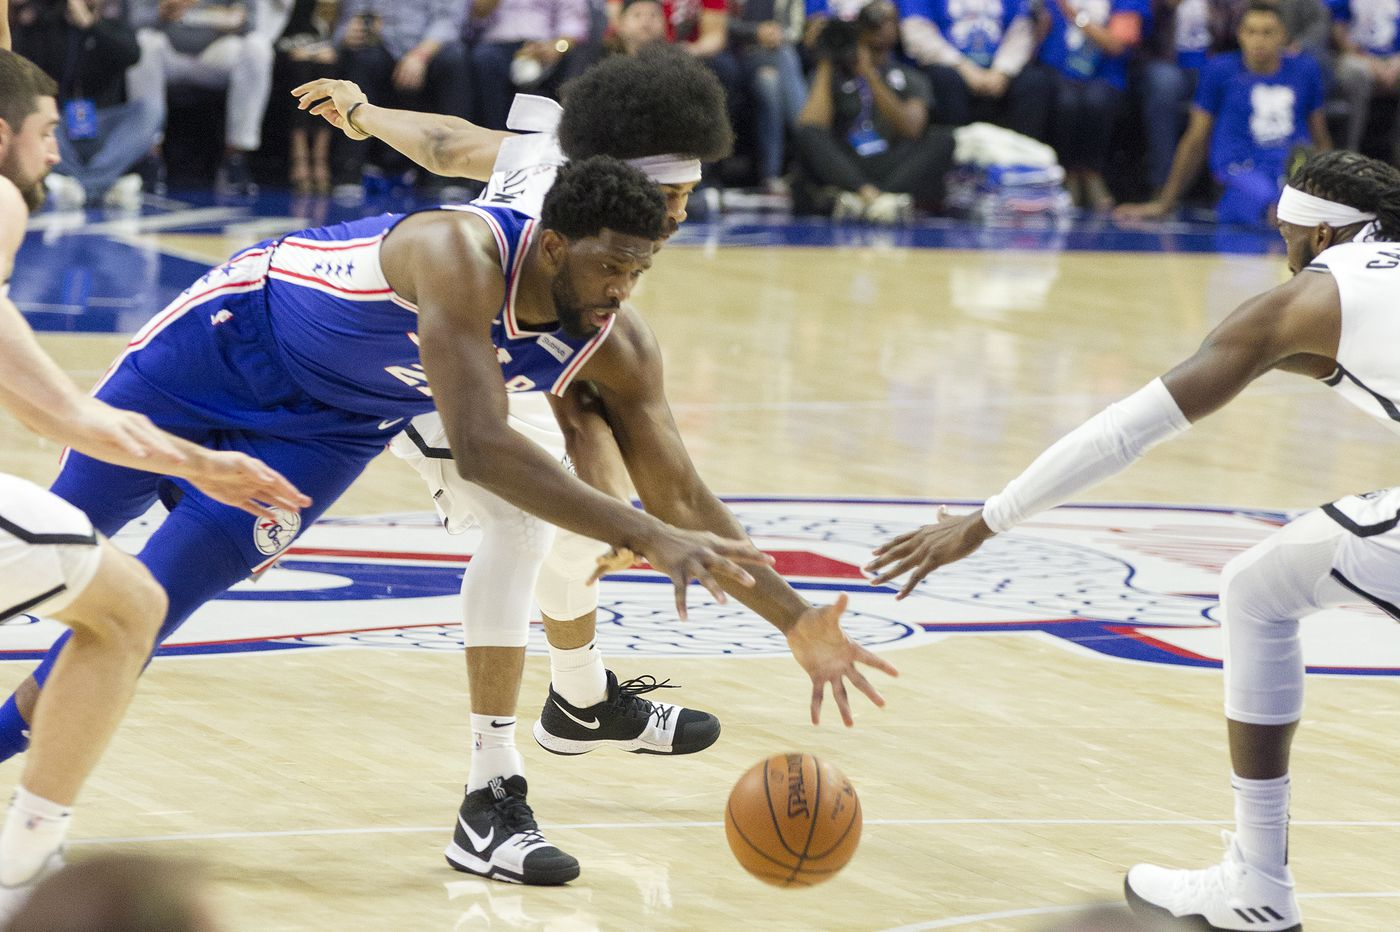 Joel Embiid's Injury Could Be Long-Term, Hinder Philadelphia 76ers' 2019 Playoff Run